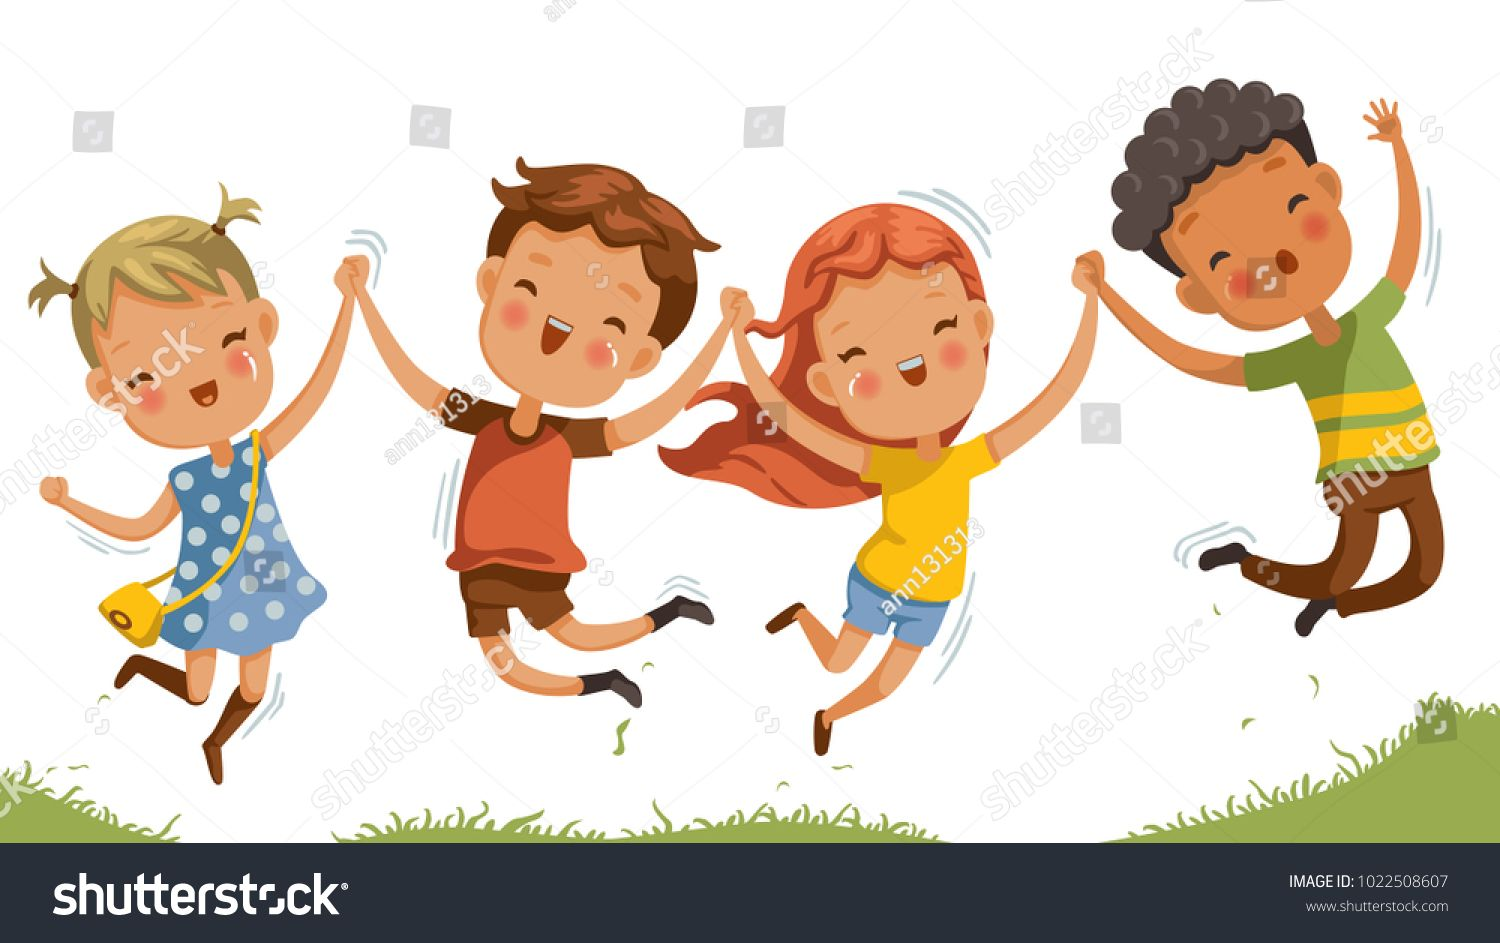 Boys and girls are playing together happily. Kids Play at.